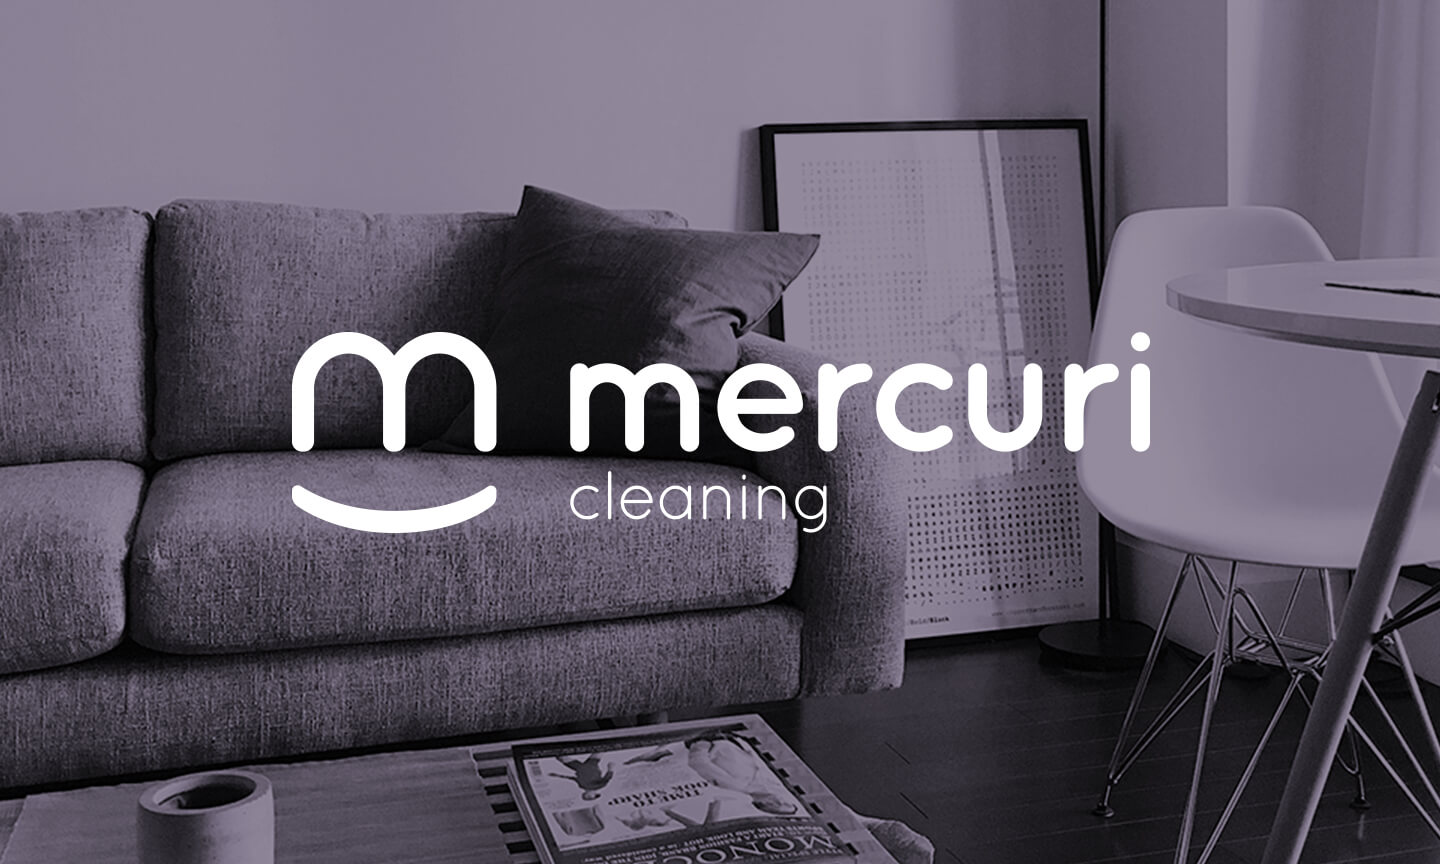 Mercuri Cleaning Company logo overlayed on a photo of a clean and minimalist style family room.